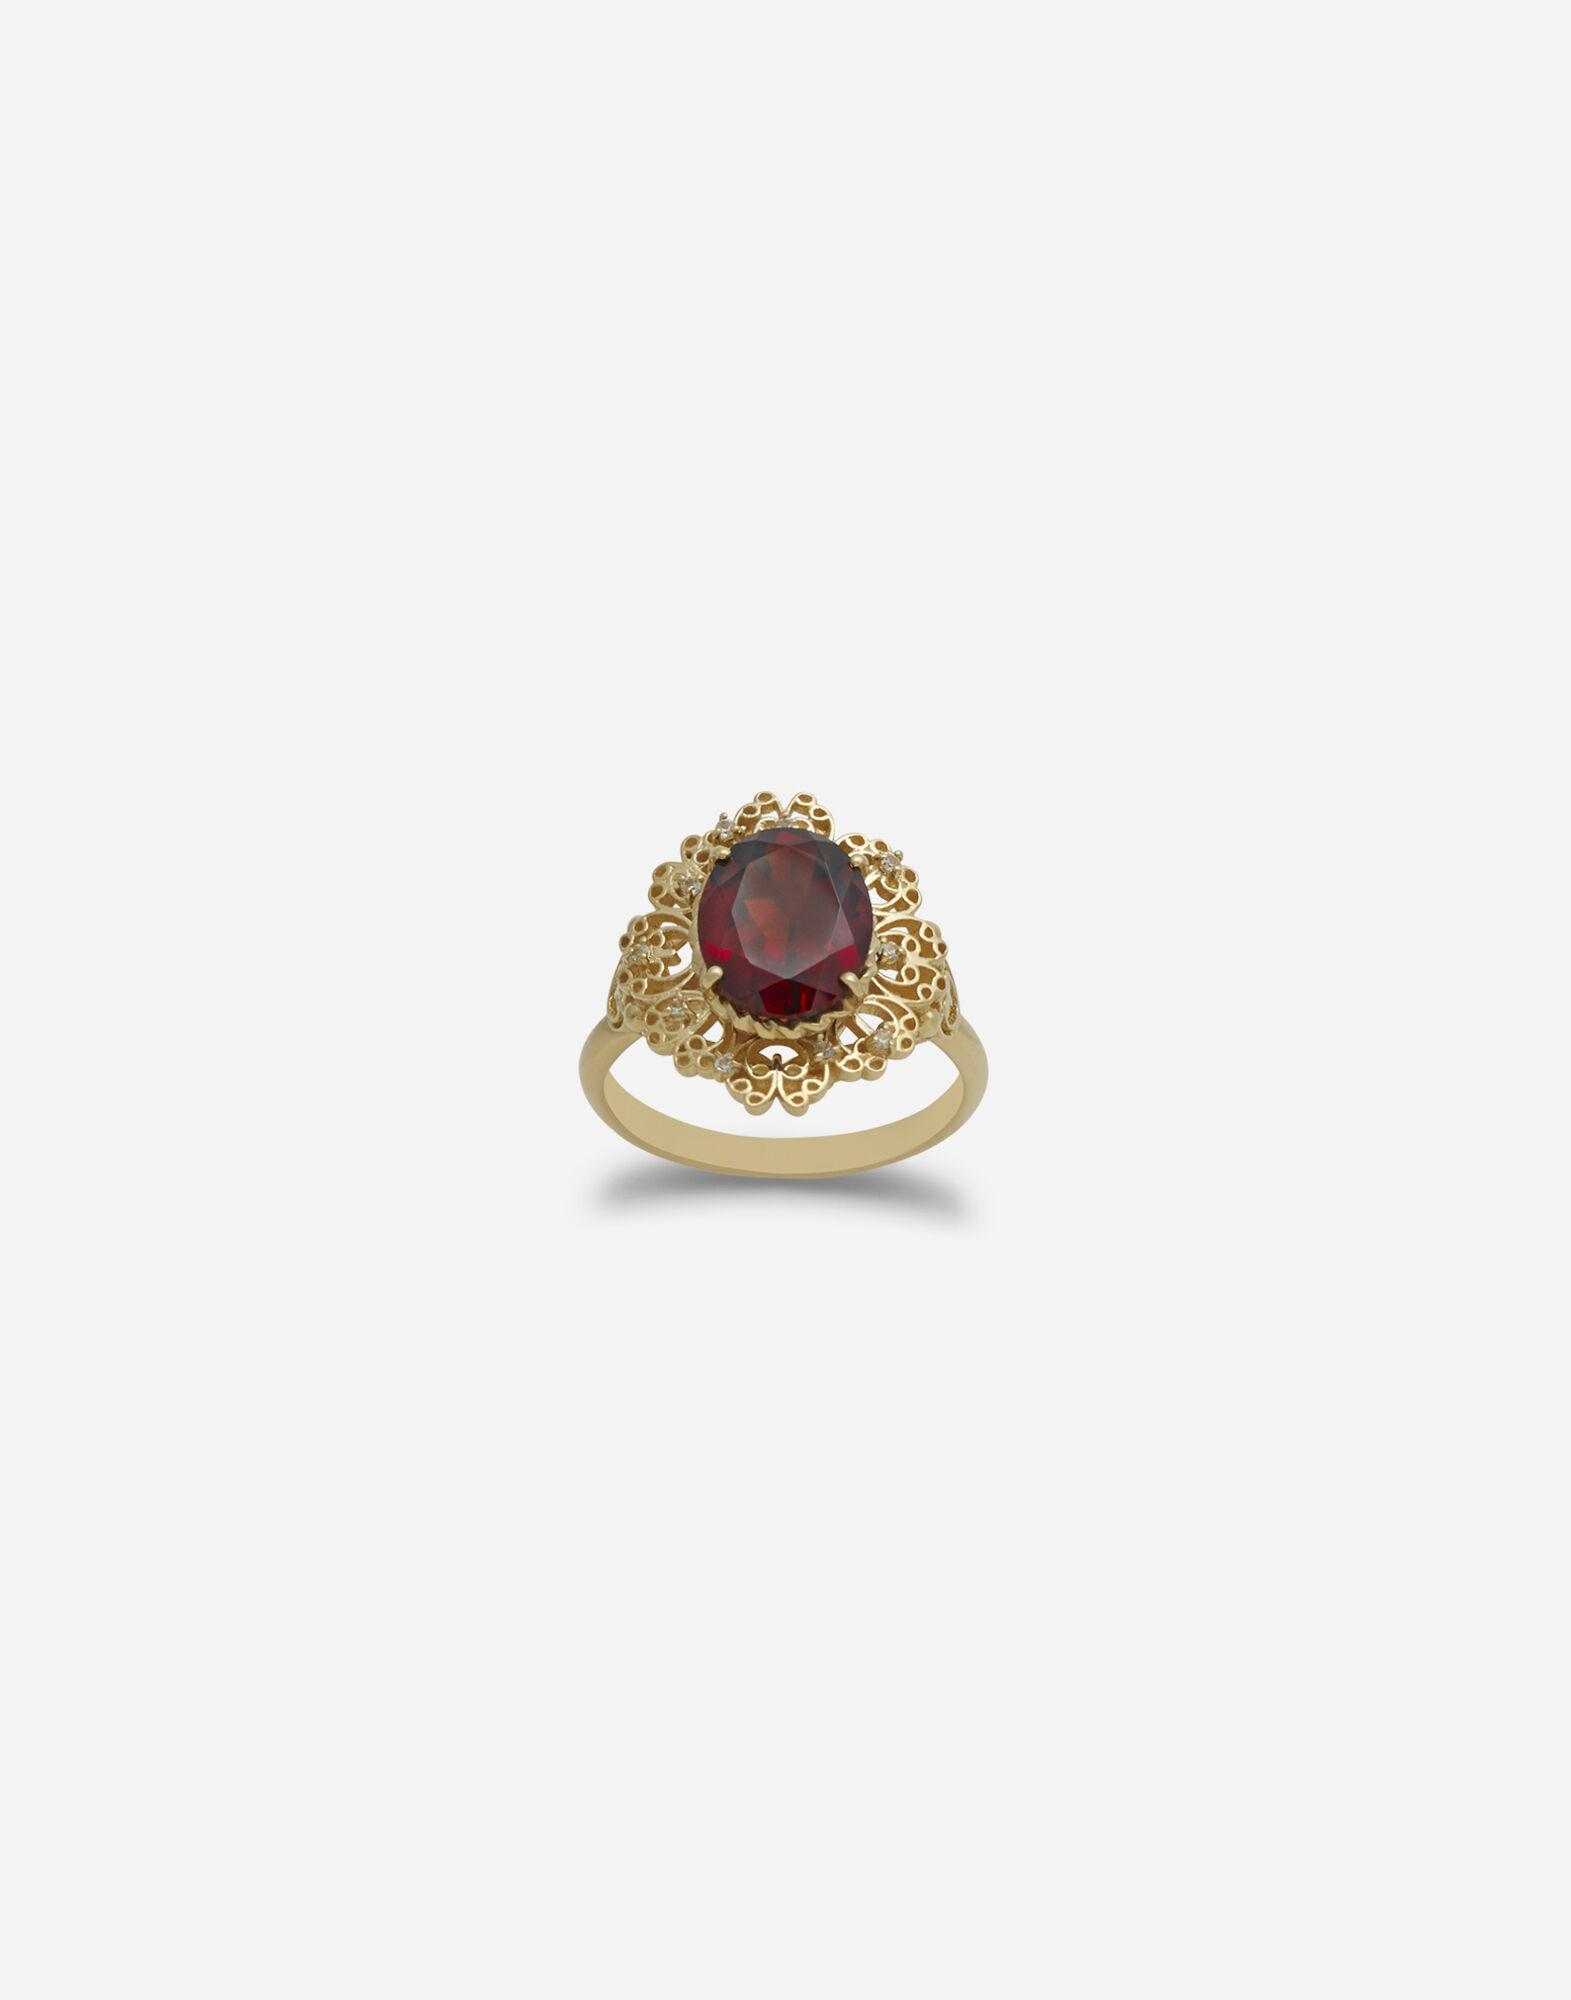 Barocco ring in yellow gold and rhodolite garnet